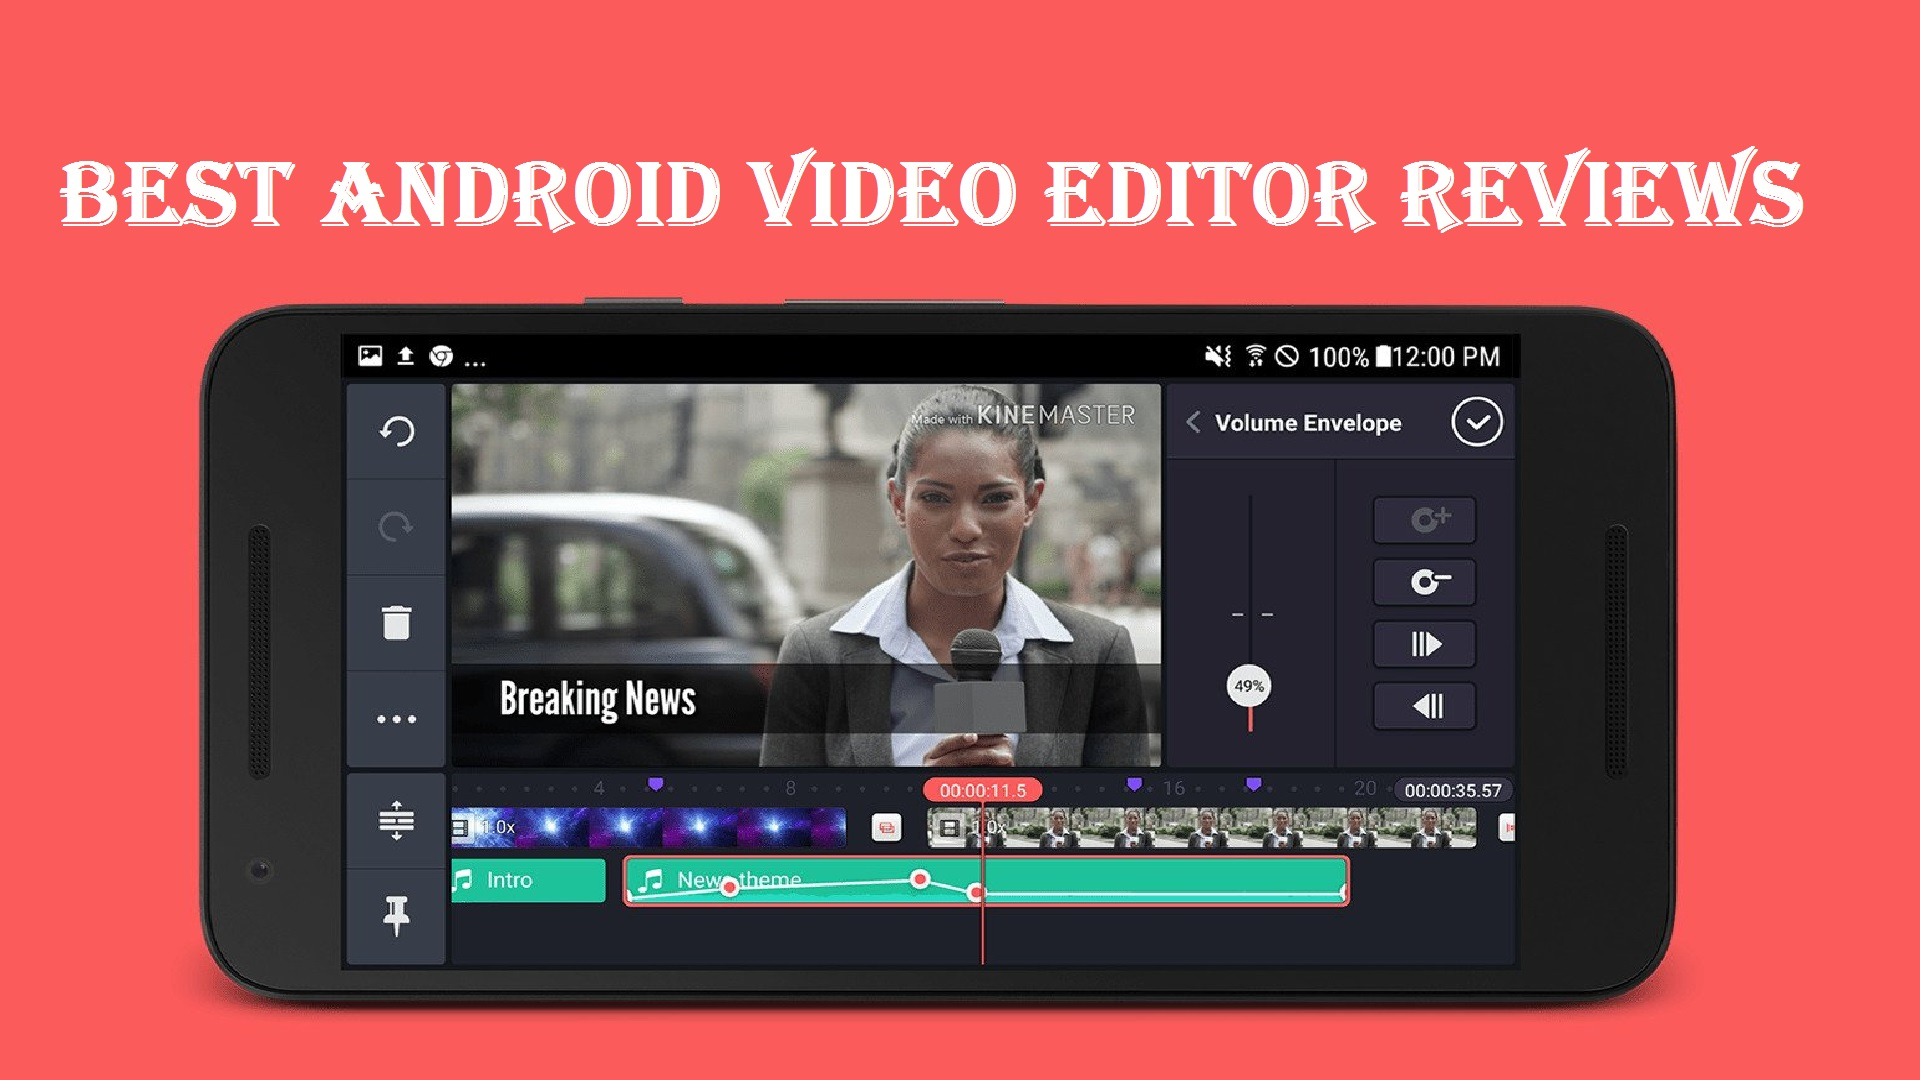 Best Android Video Editor Reviews